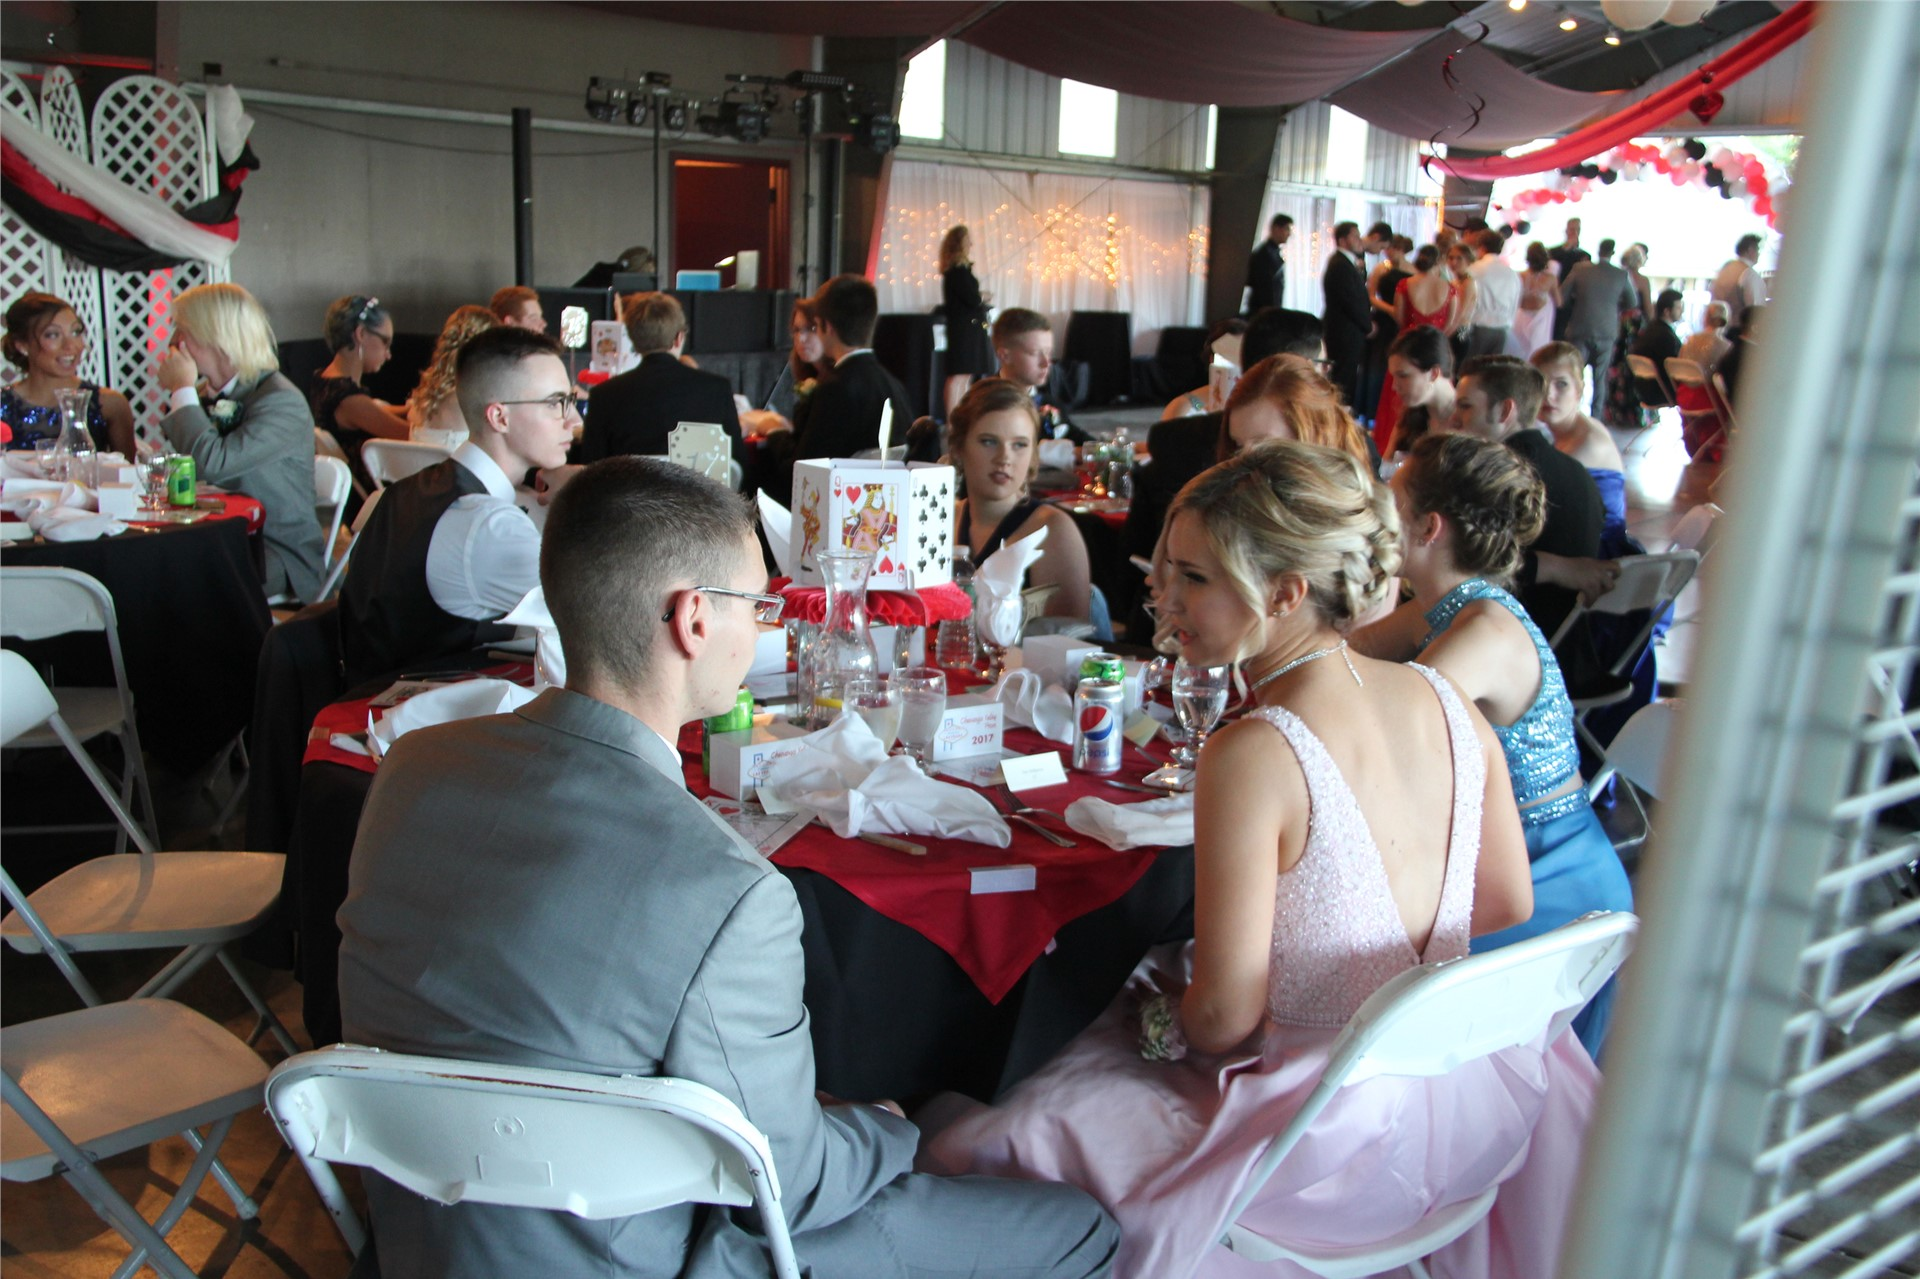 students sit and socialize inside of prom venue